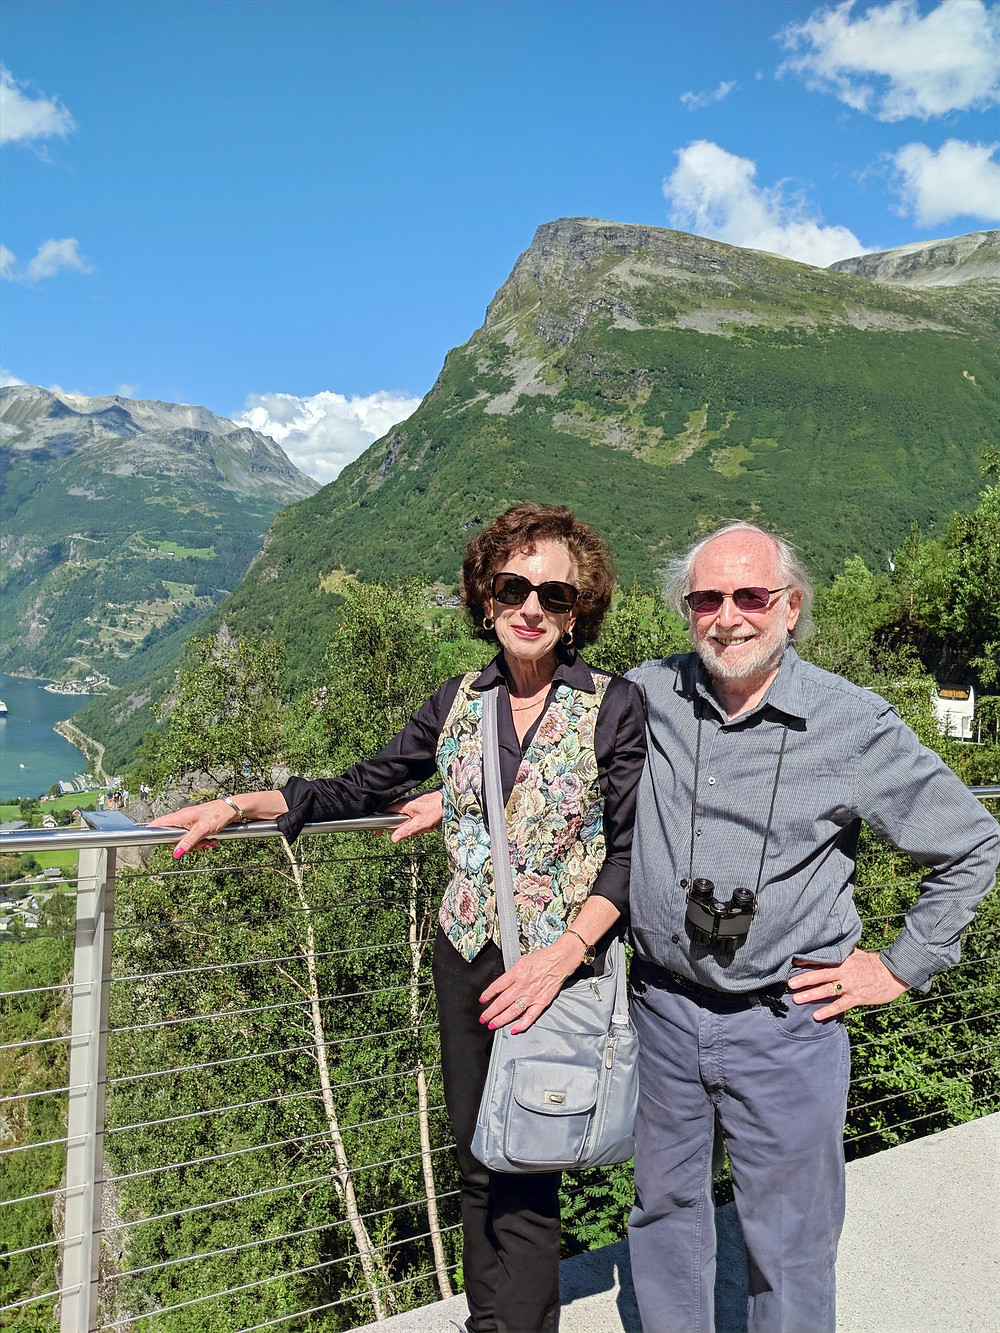 Donna and her husband pose in front of a mountain overlooking a river in Norway.